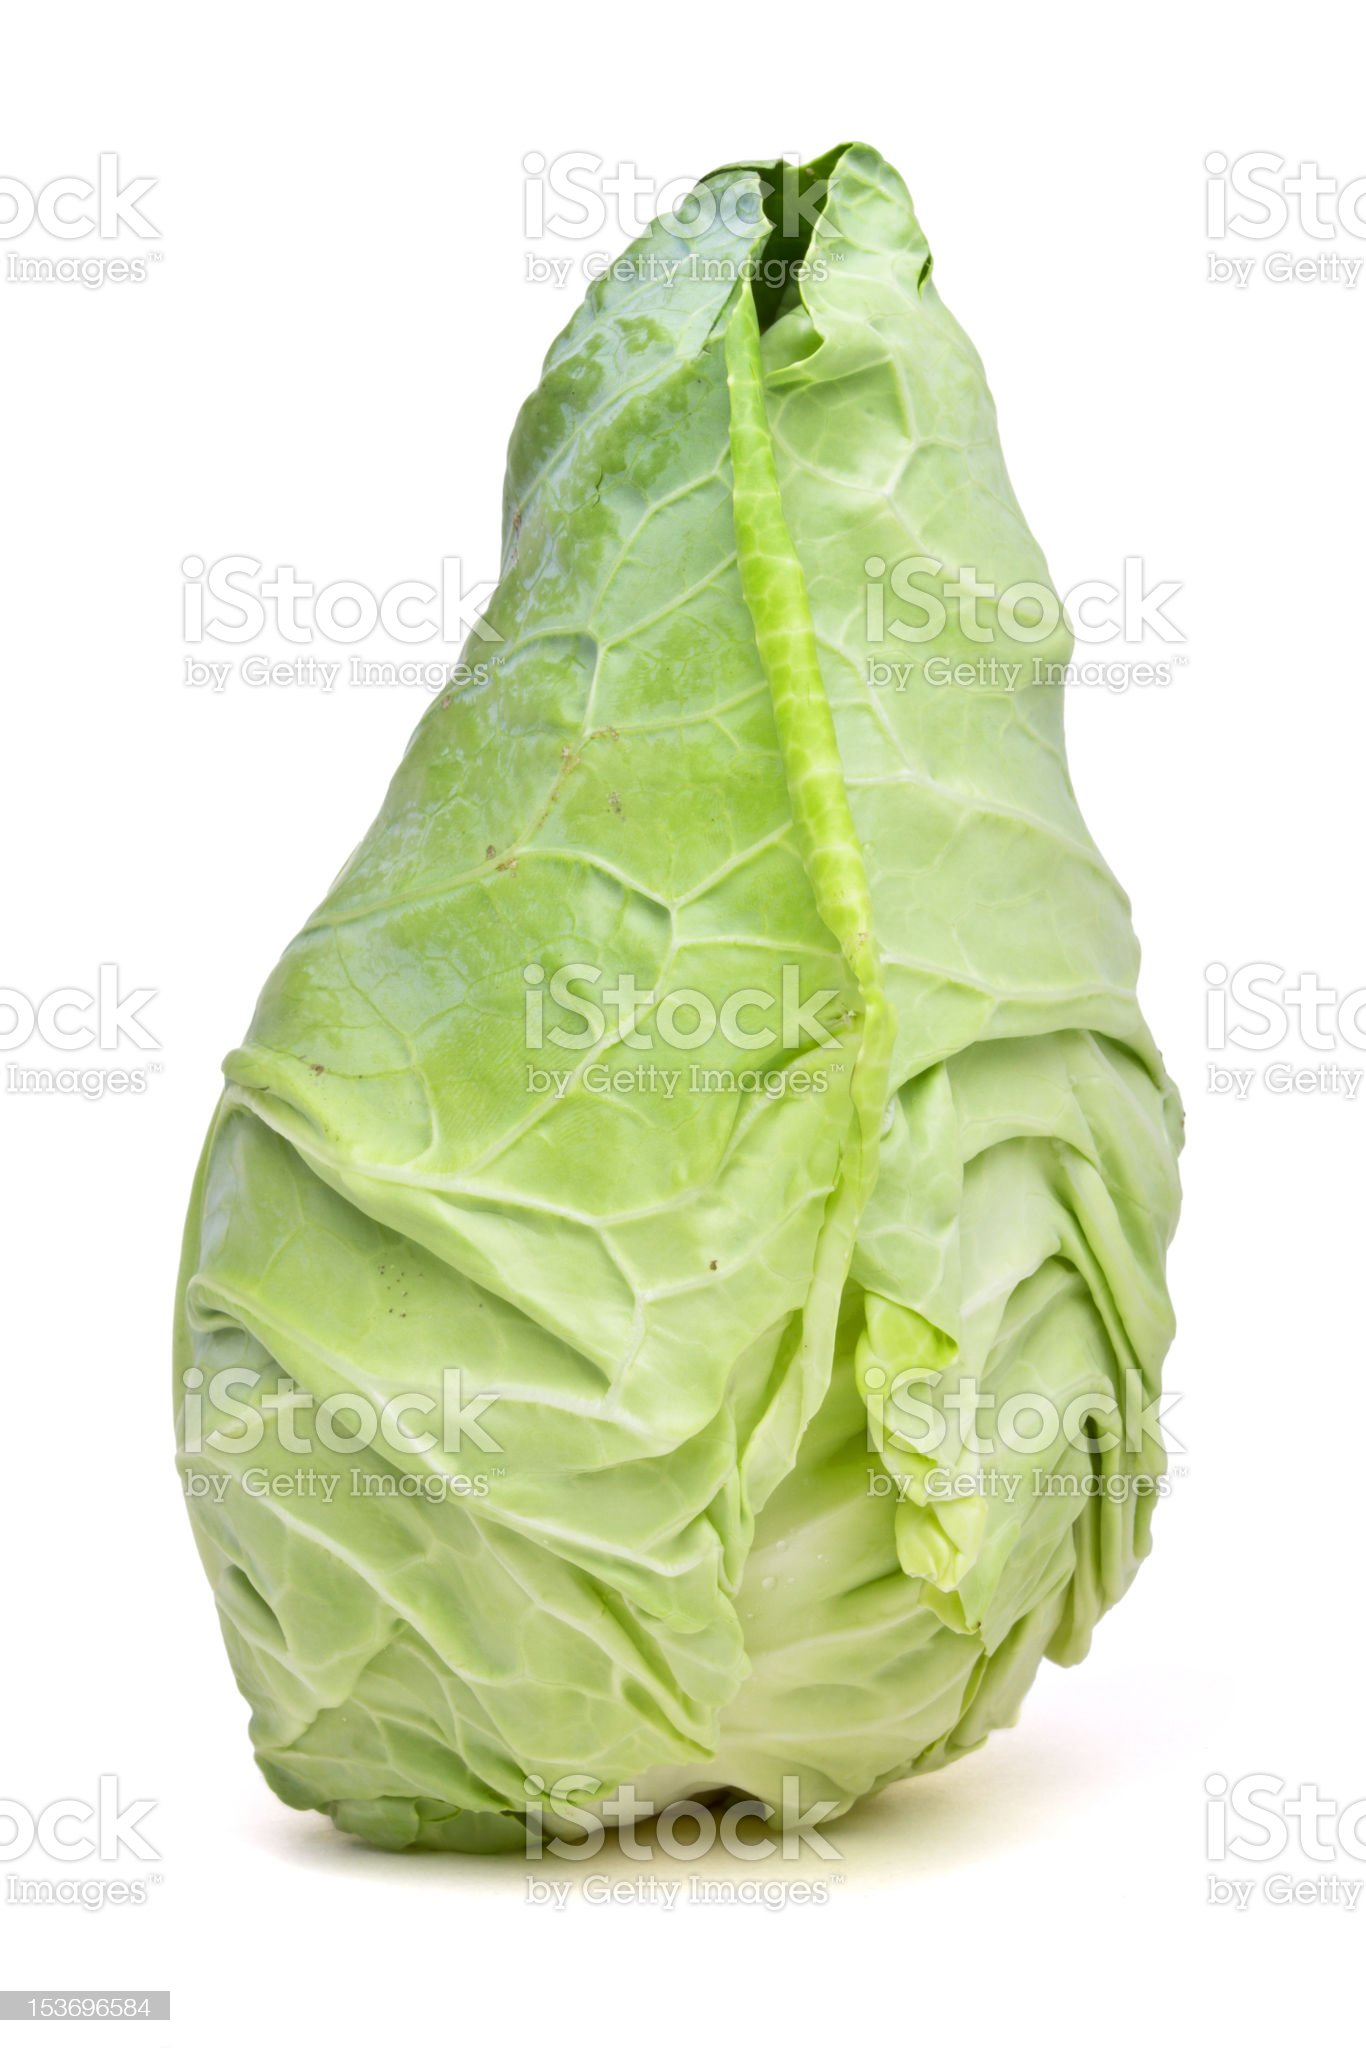 Sweetheart Cabbage royalty-free stock photo